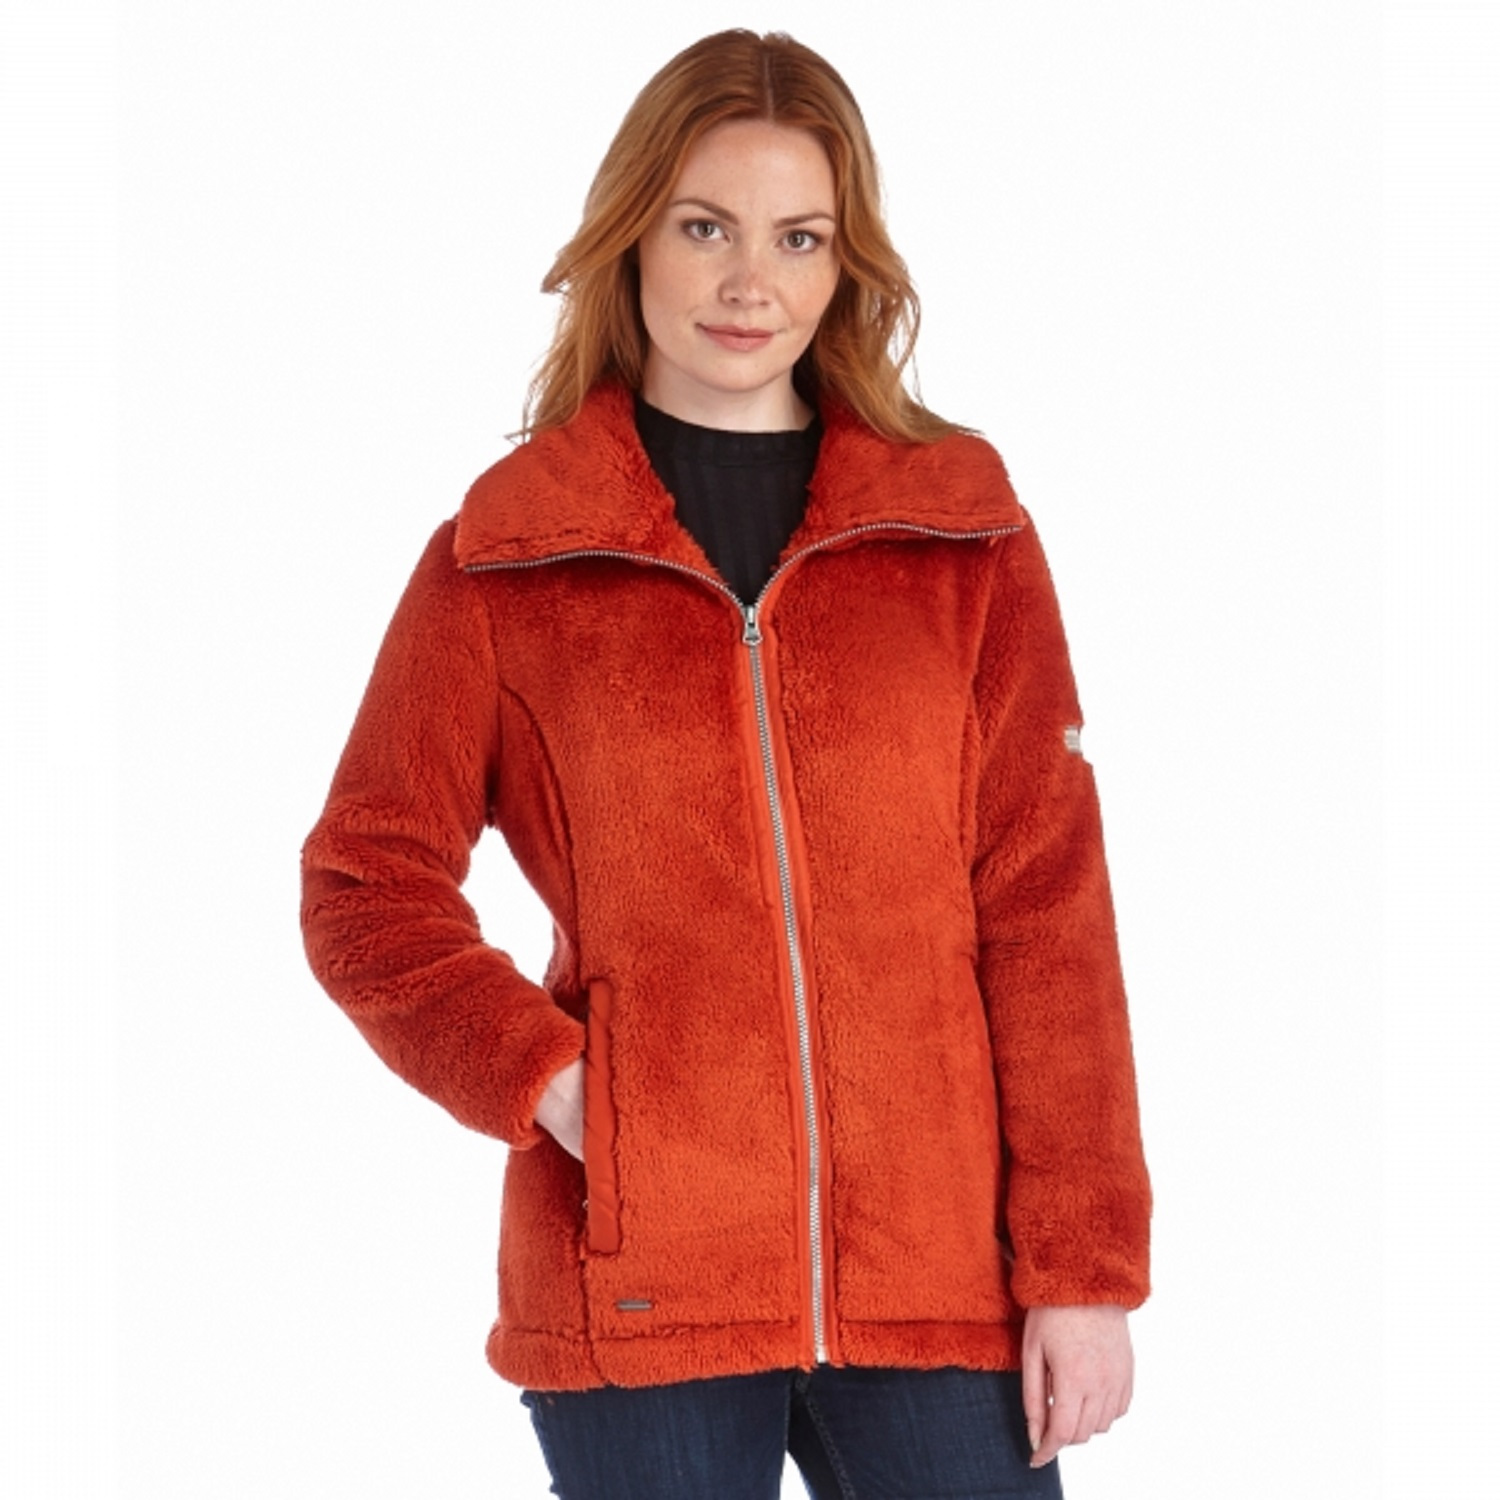 Ladies Fluffy Fleece Jacket | Jackets Review